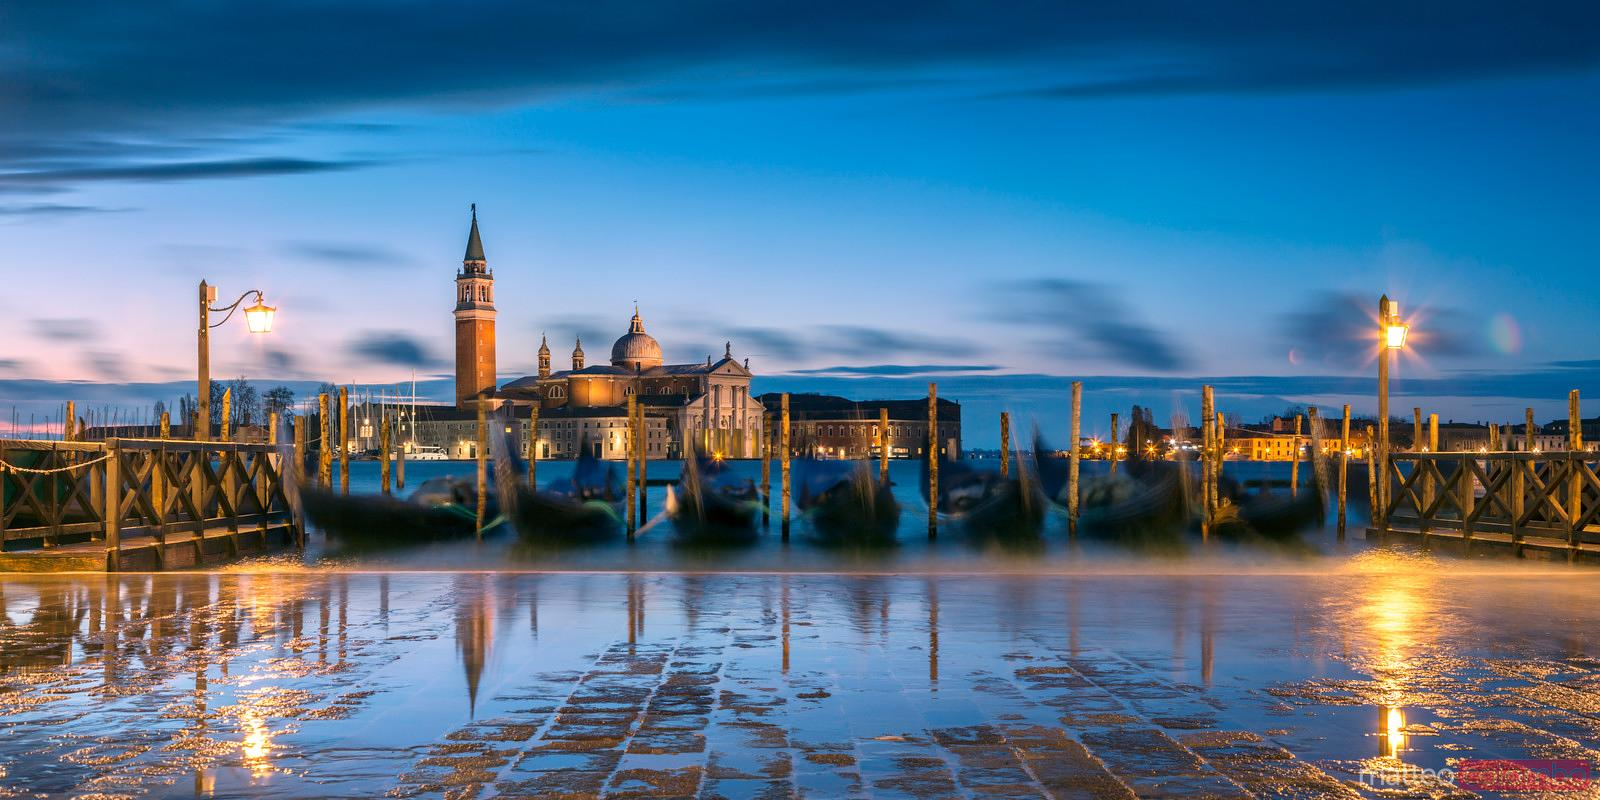 Panoramic waterfront at high tide, Venice, Italy